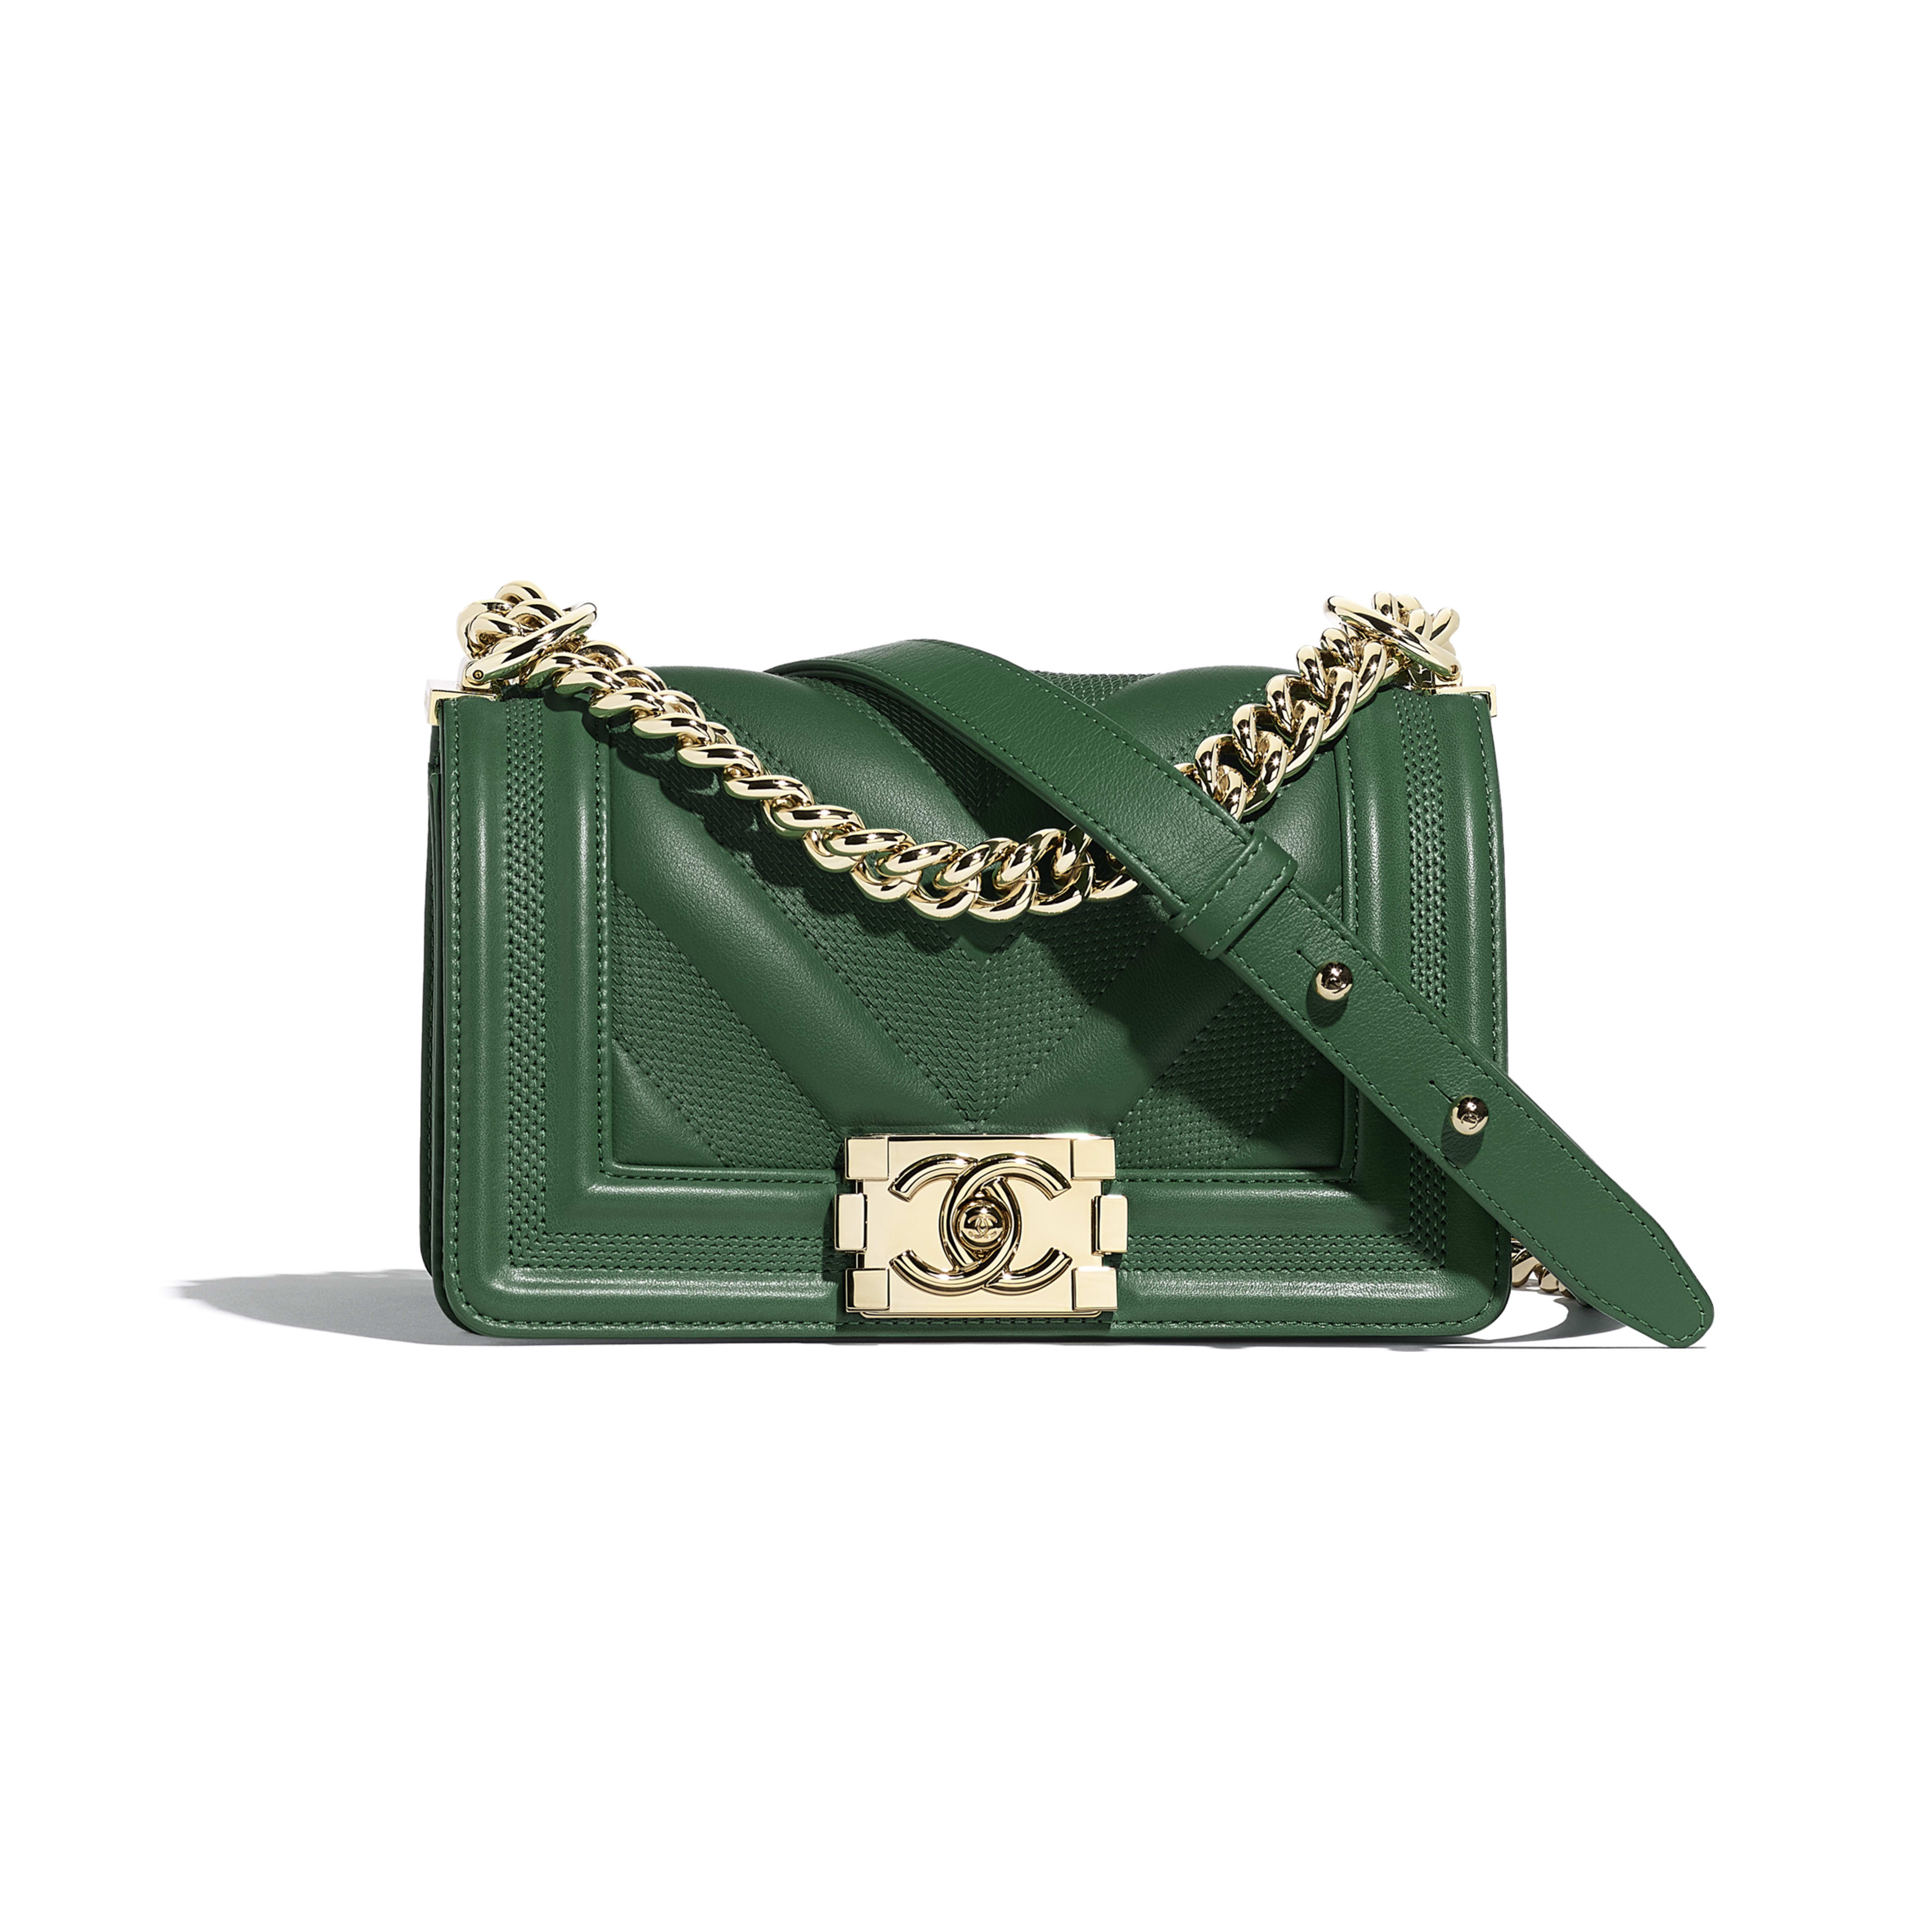 Small BOY CHANEL Handbag - Green - Calfskin & Gold-Tone Metal - Default view - see full sized version